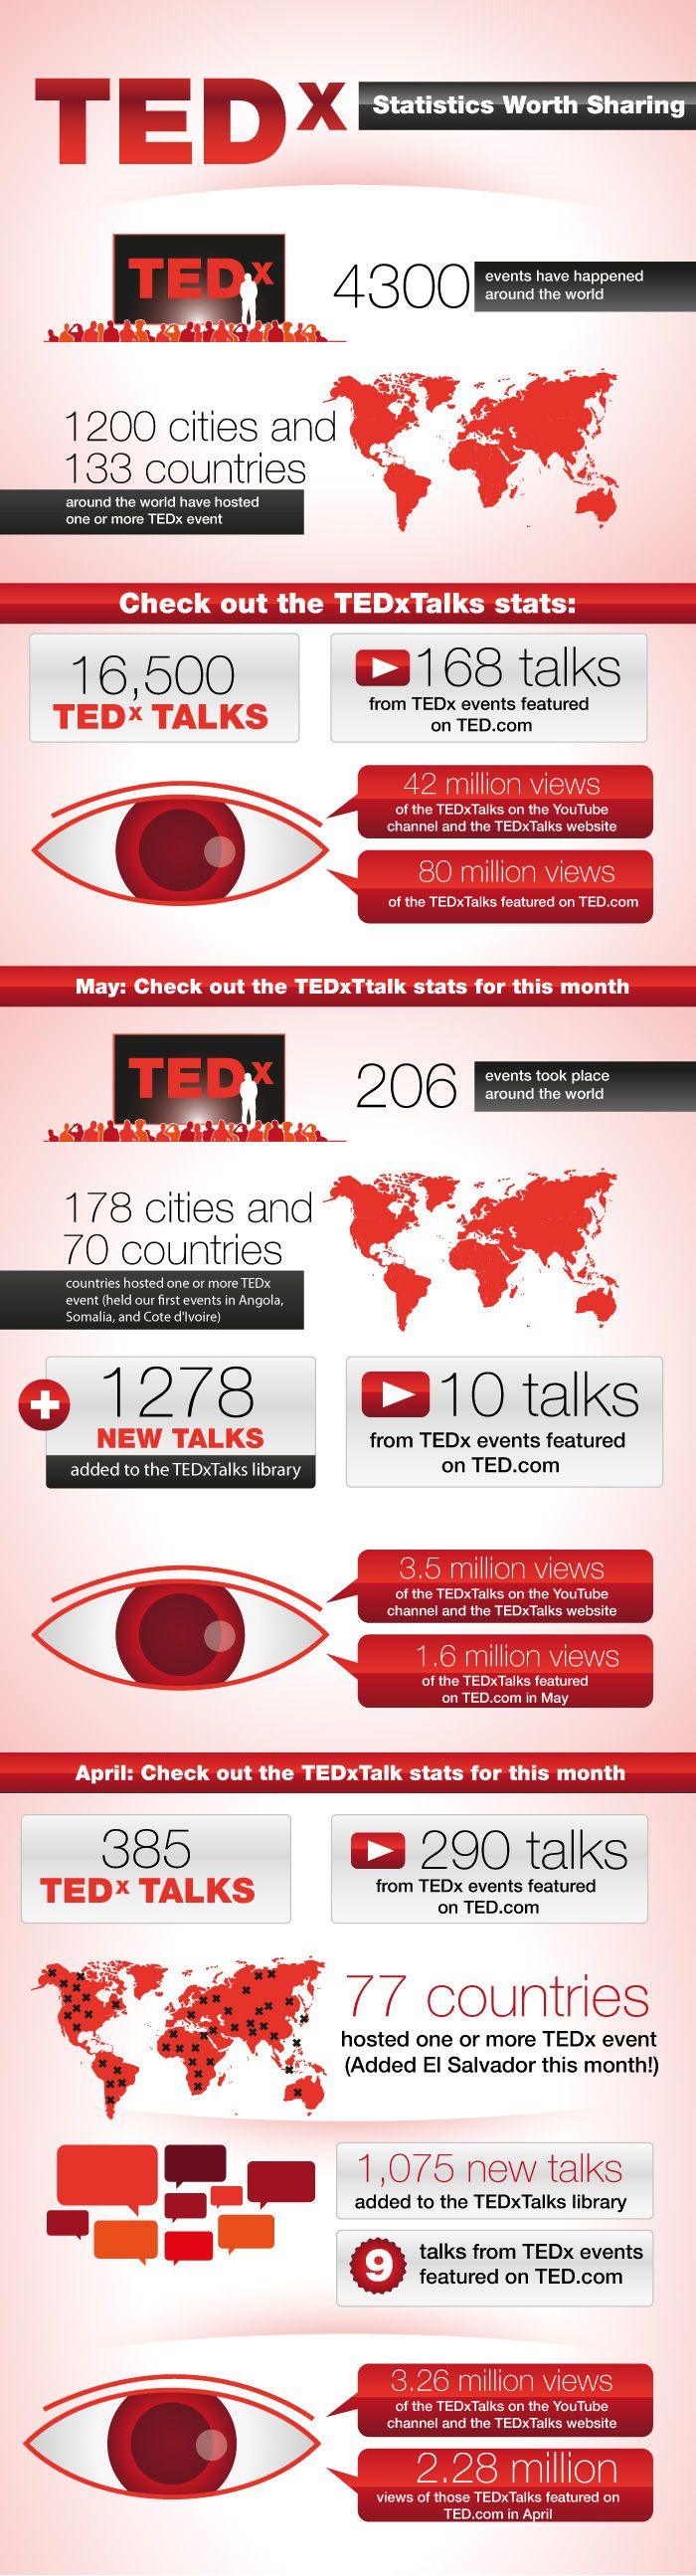 #TEDx Statistics Worth Sharing. #TED #infographic #TEDxSummit #videos